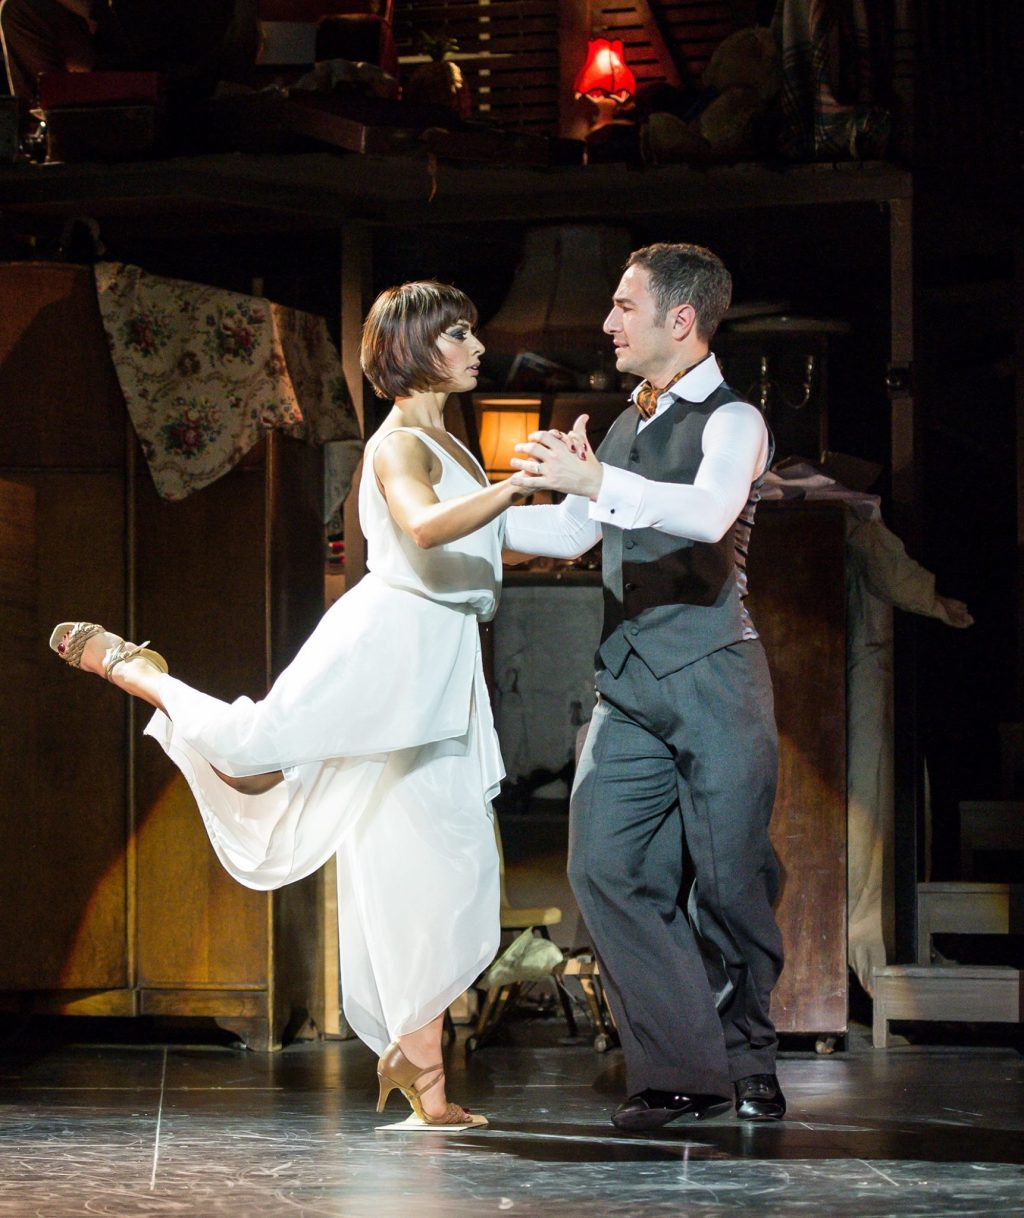 Review of The Last Tango: Vincent Simone and Flavia Cacace